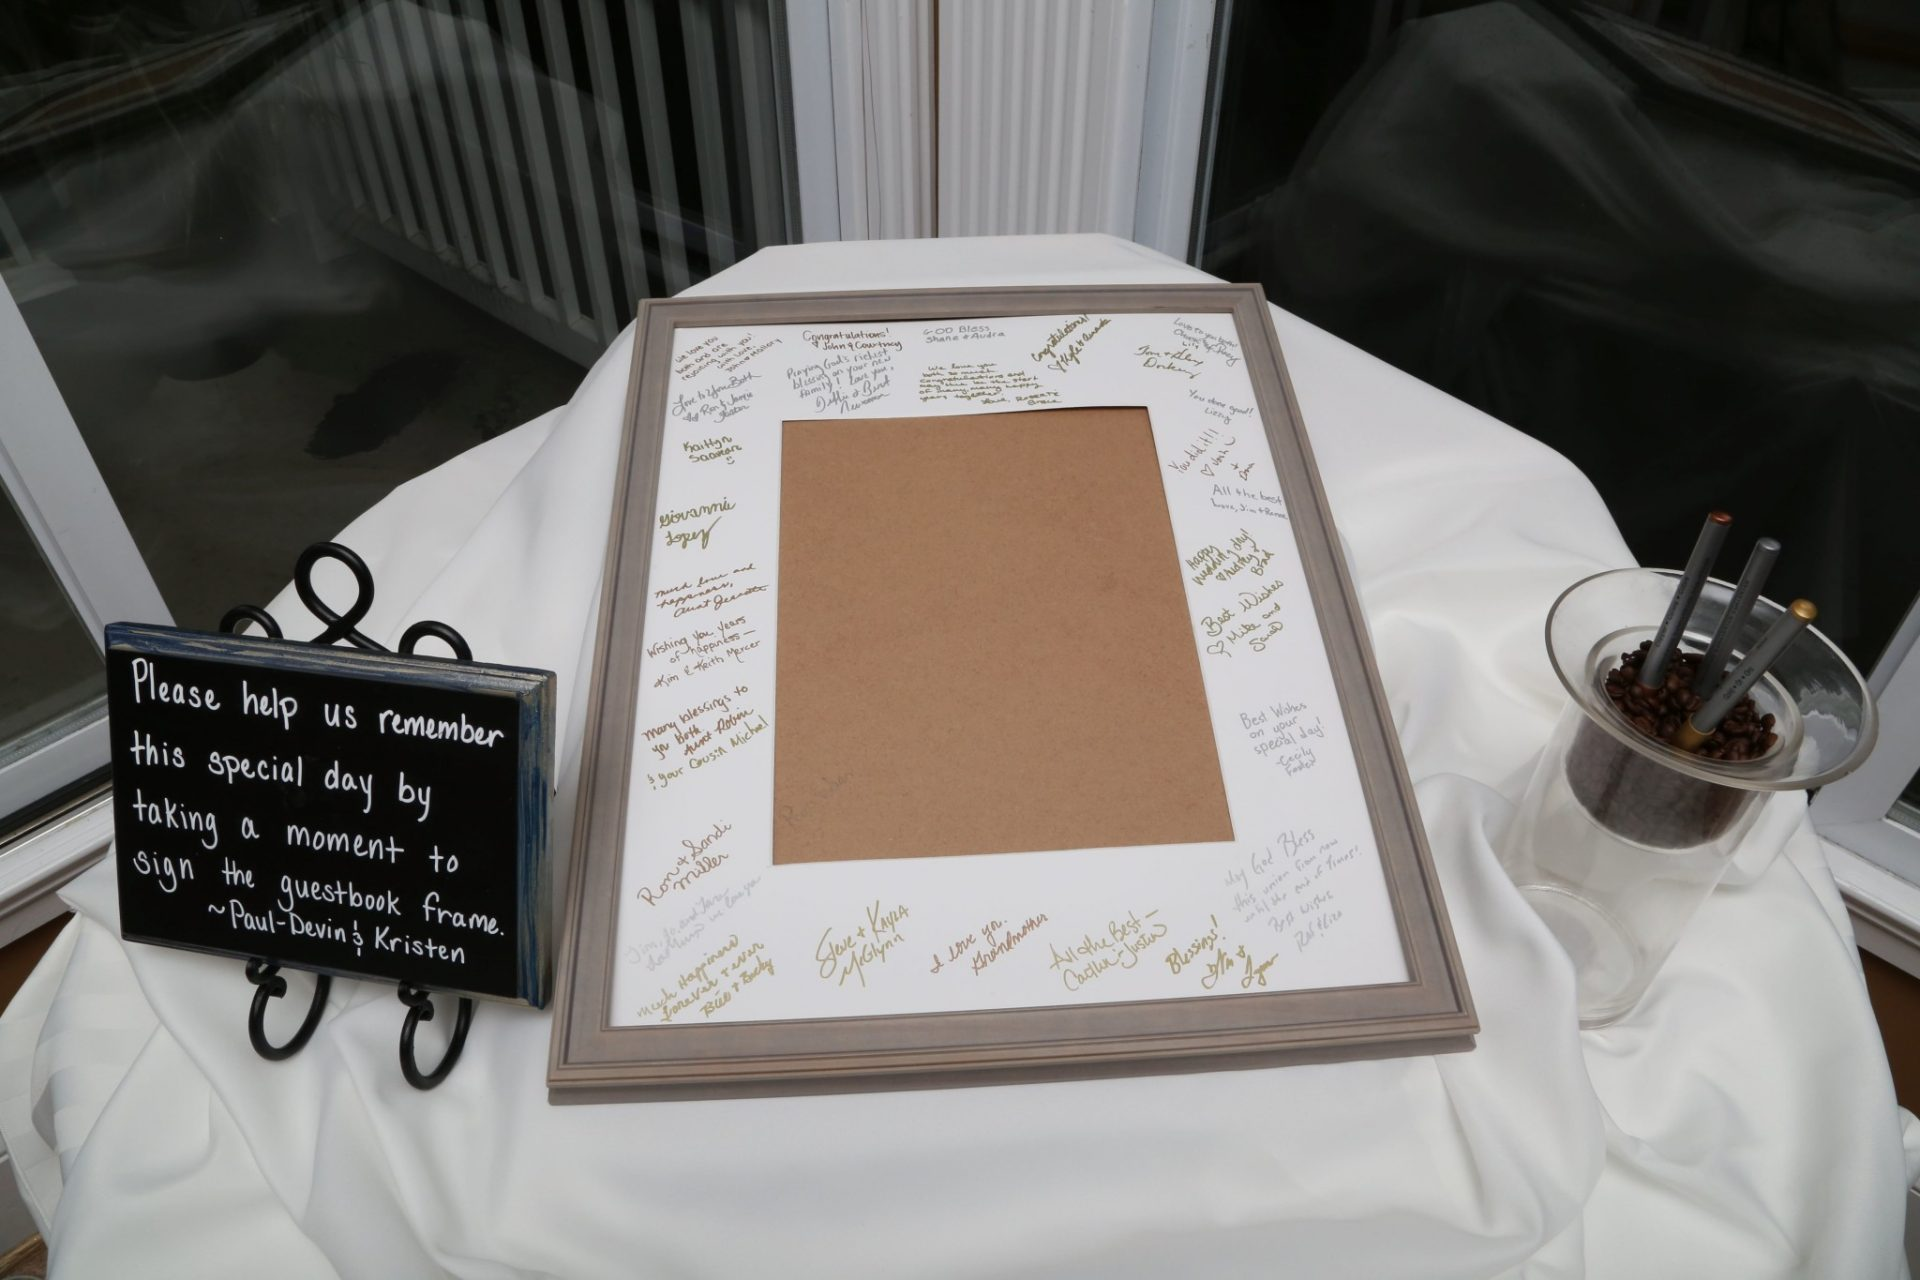 Guests sign frame instead of guest book